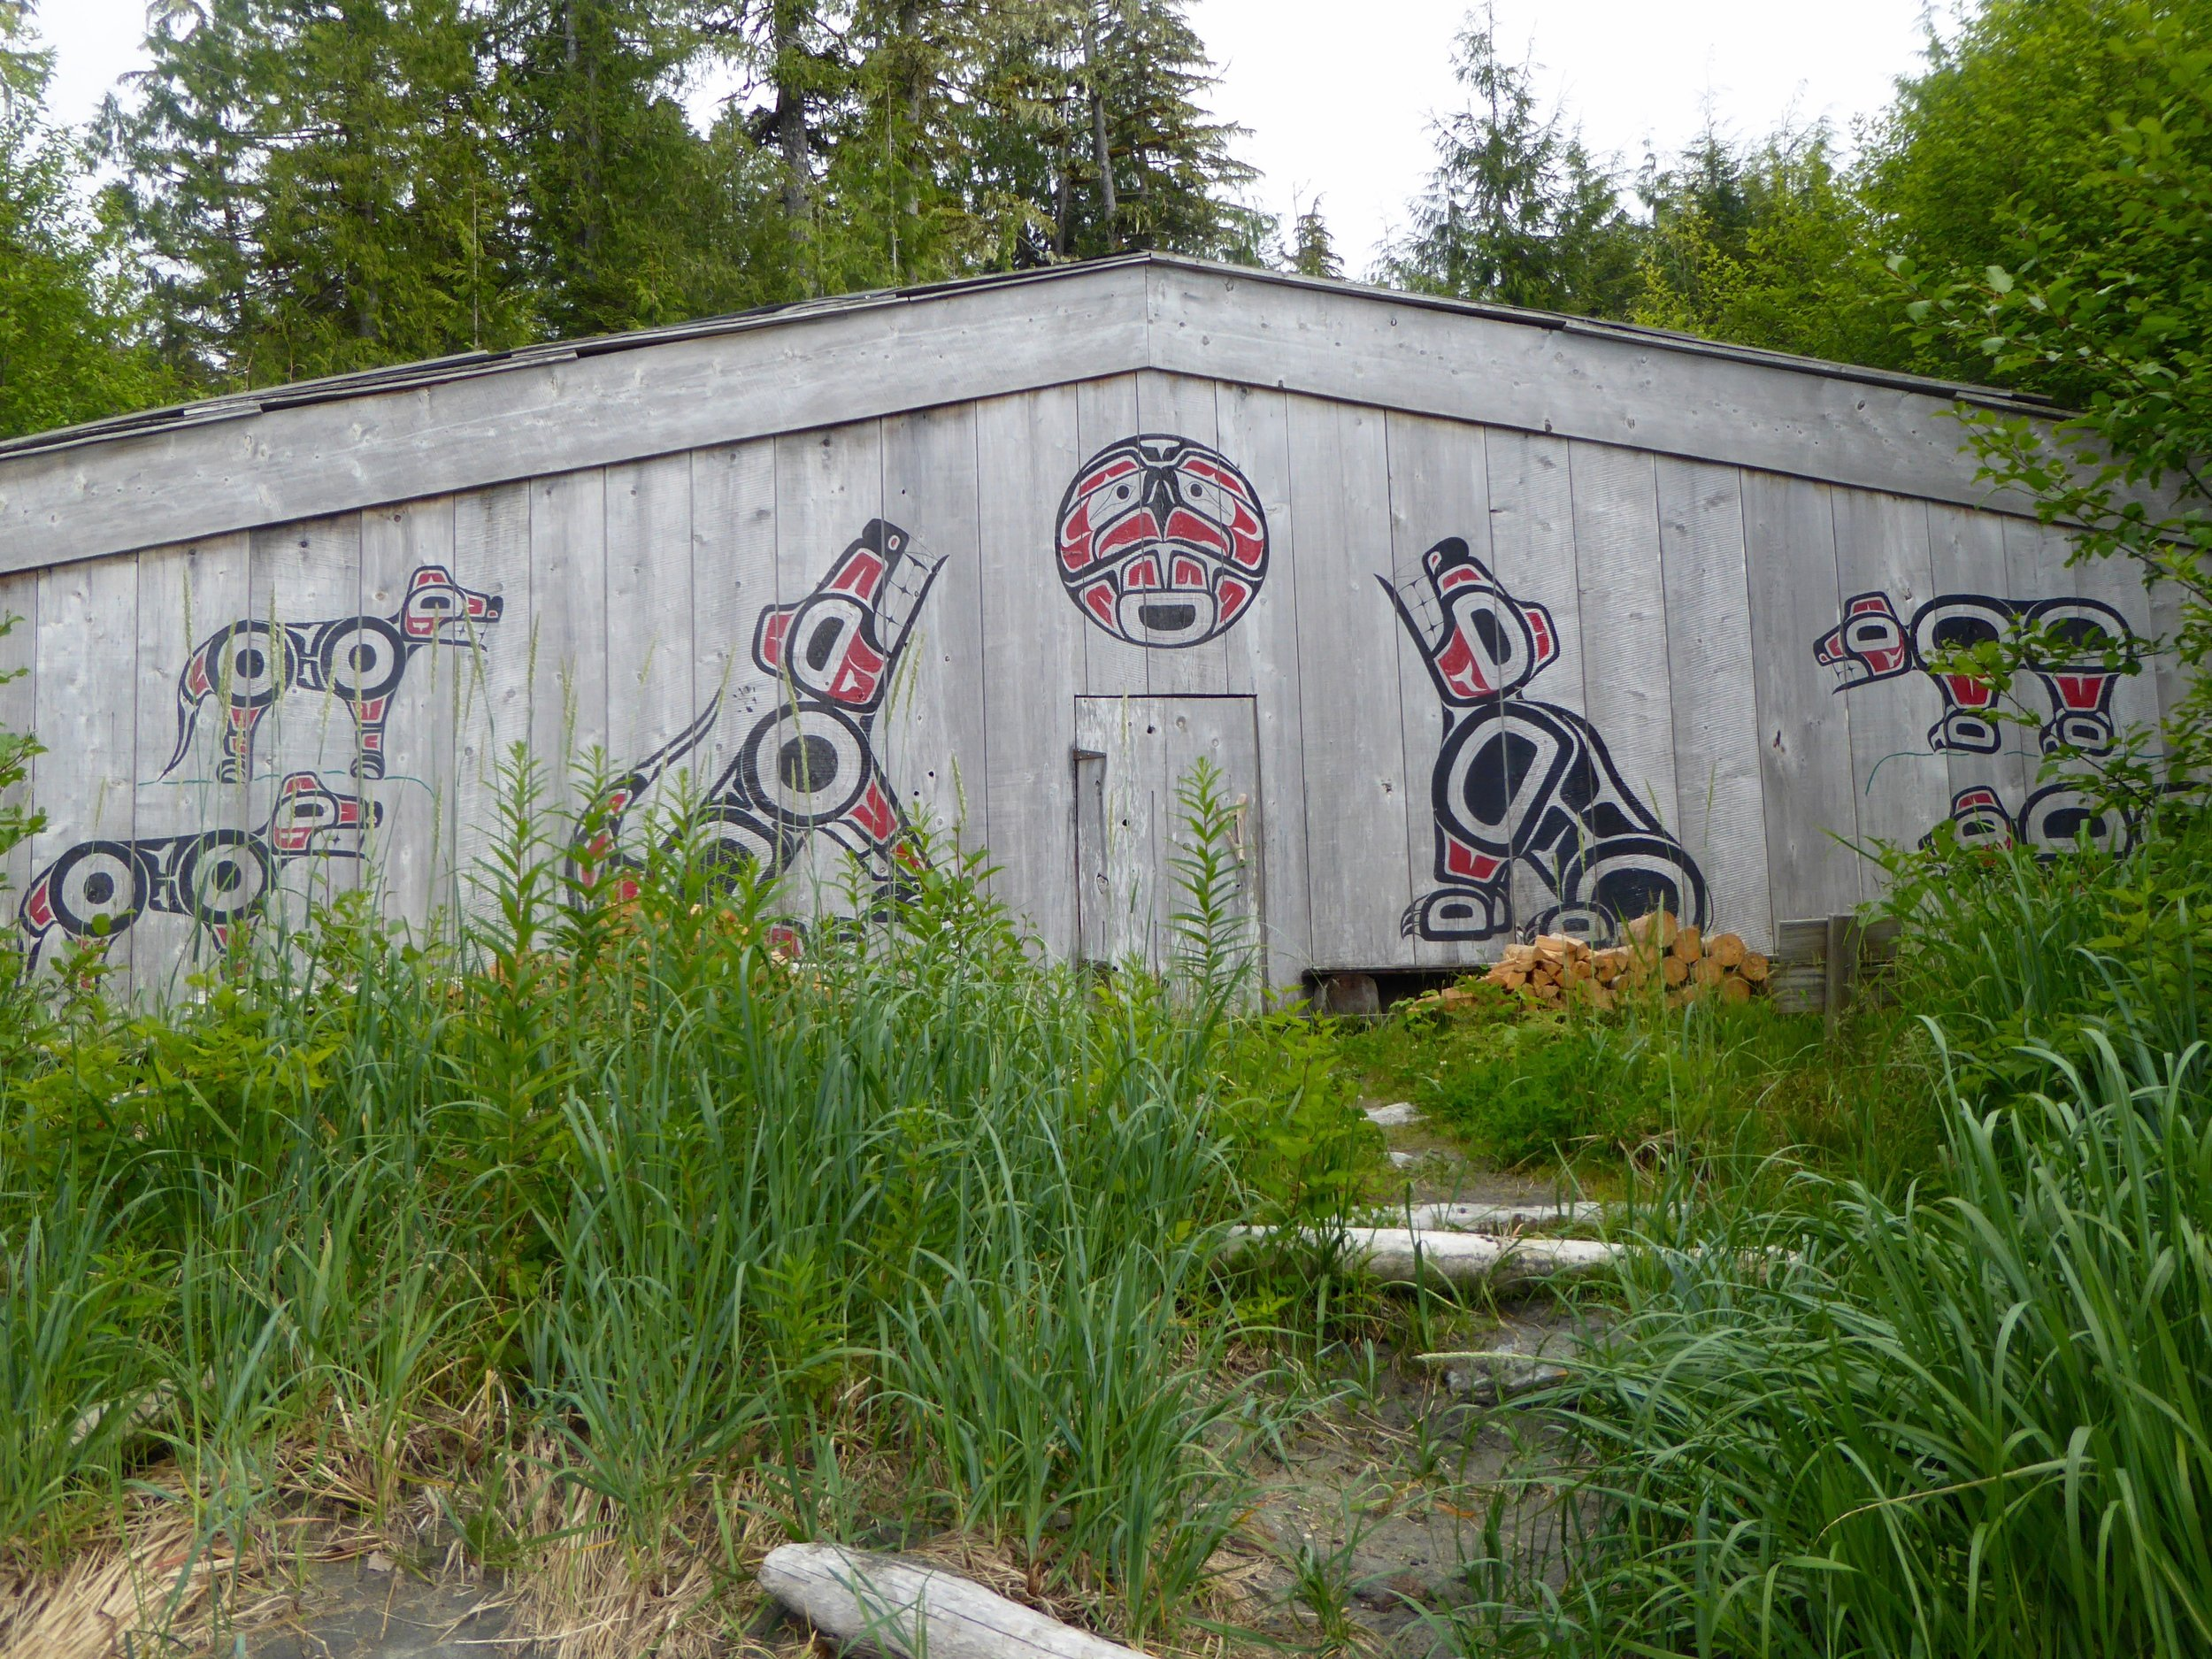 The two figures guarding the door are paintings of the wolf clan.